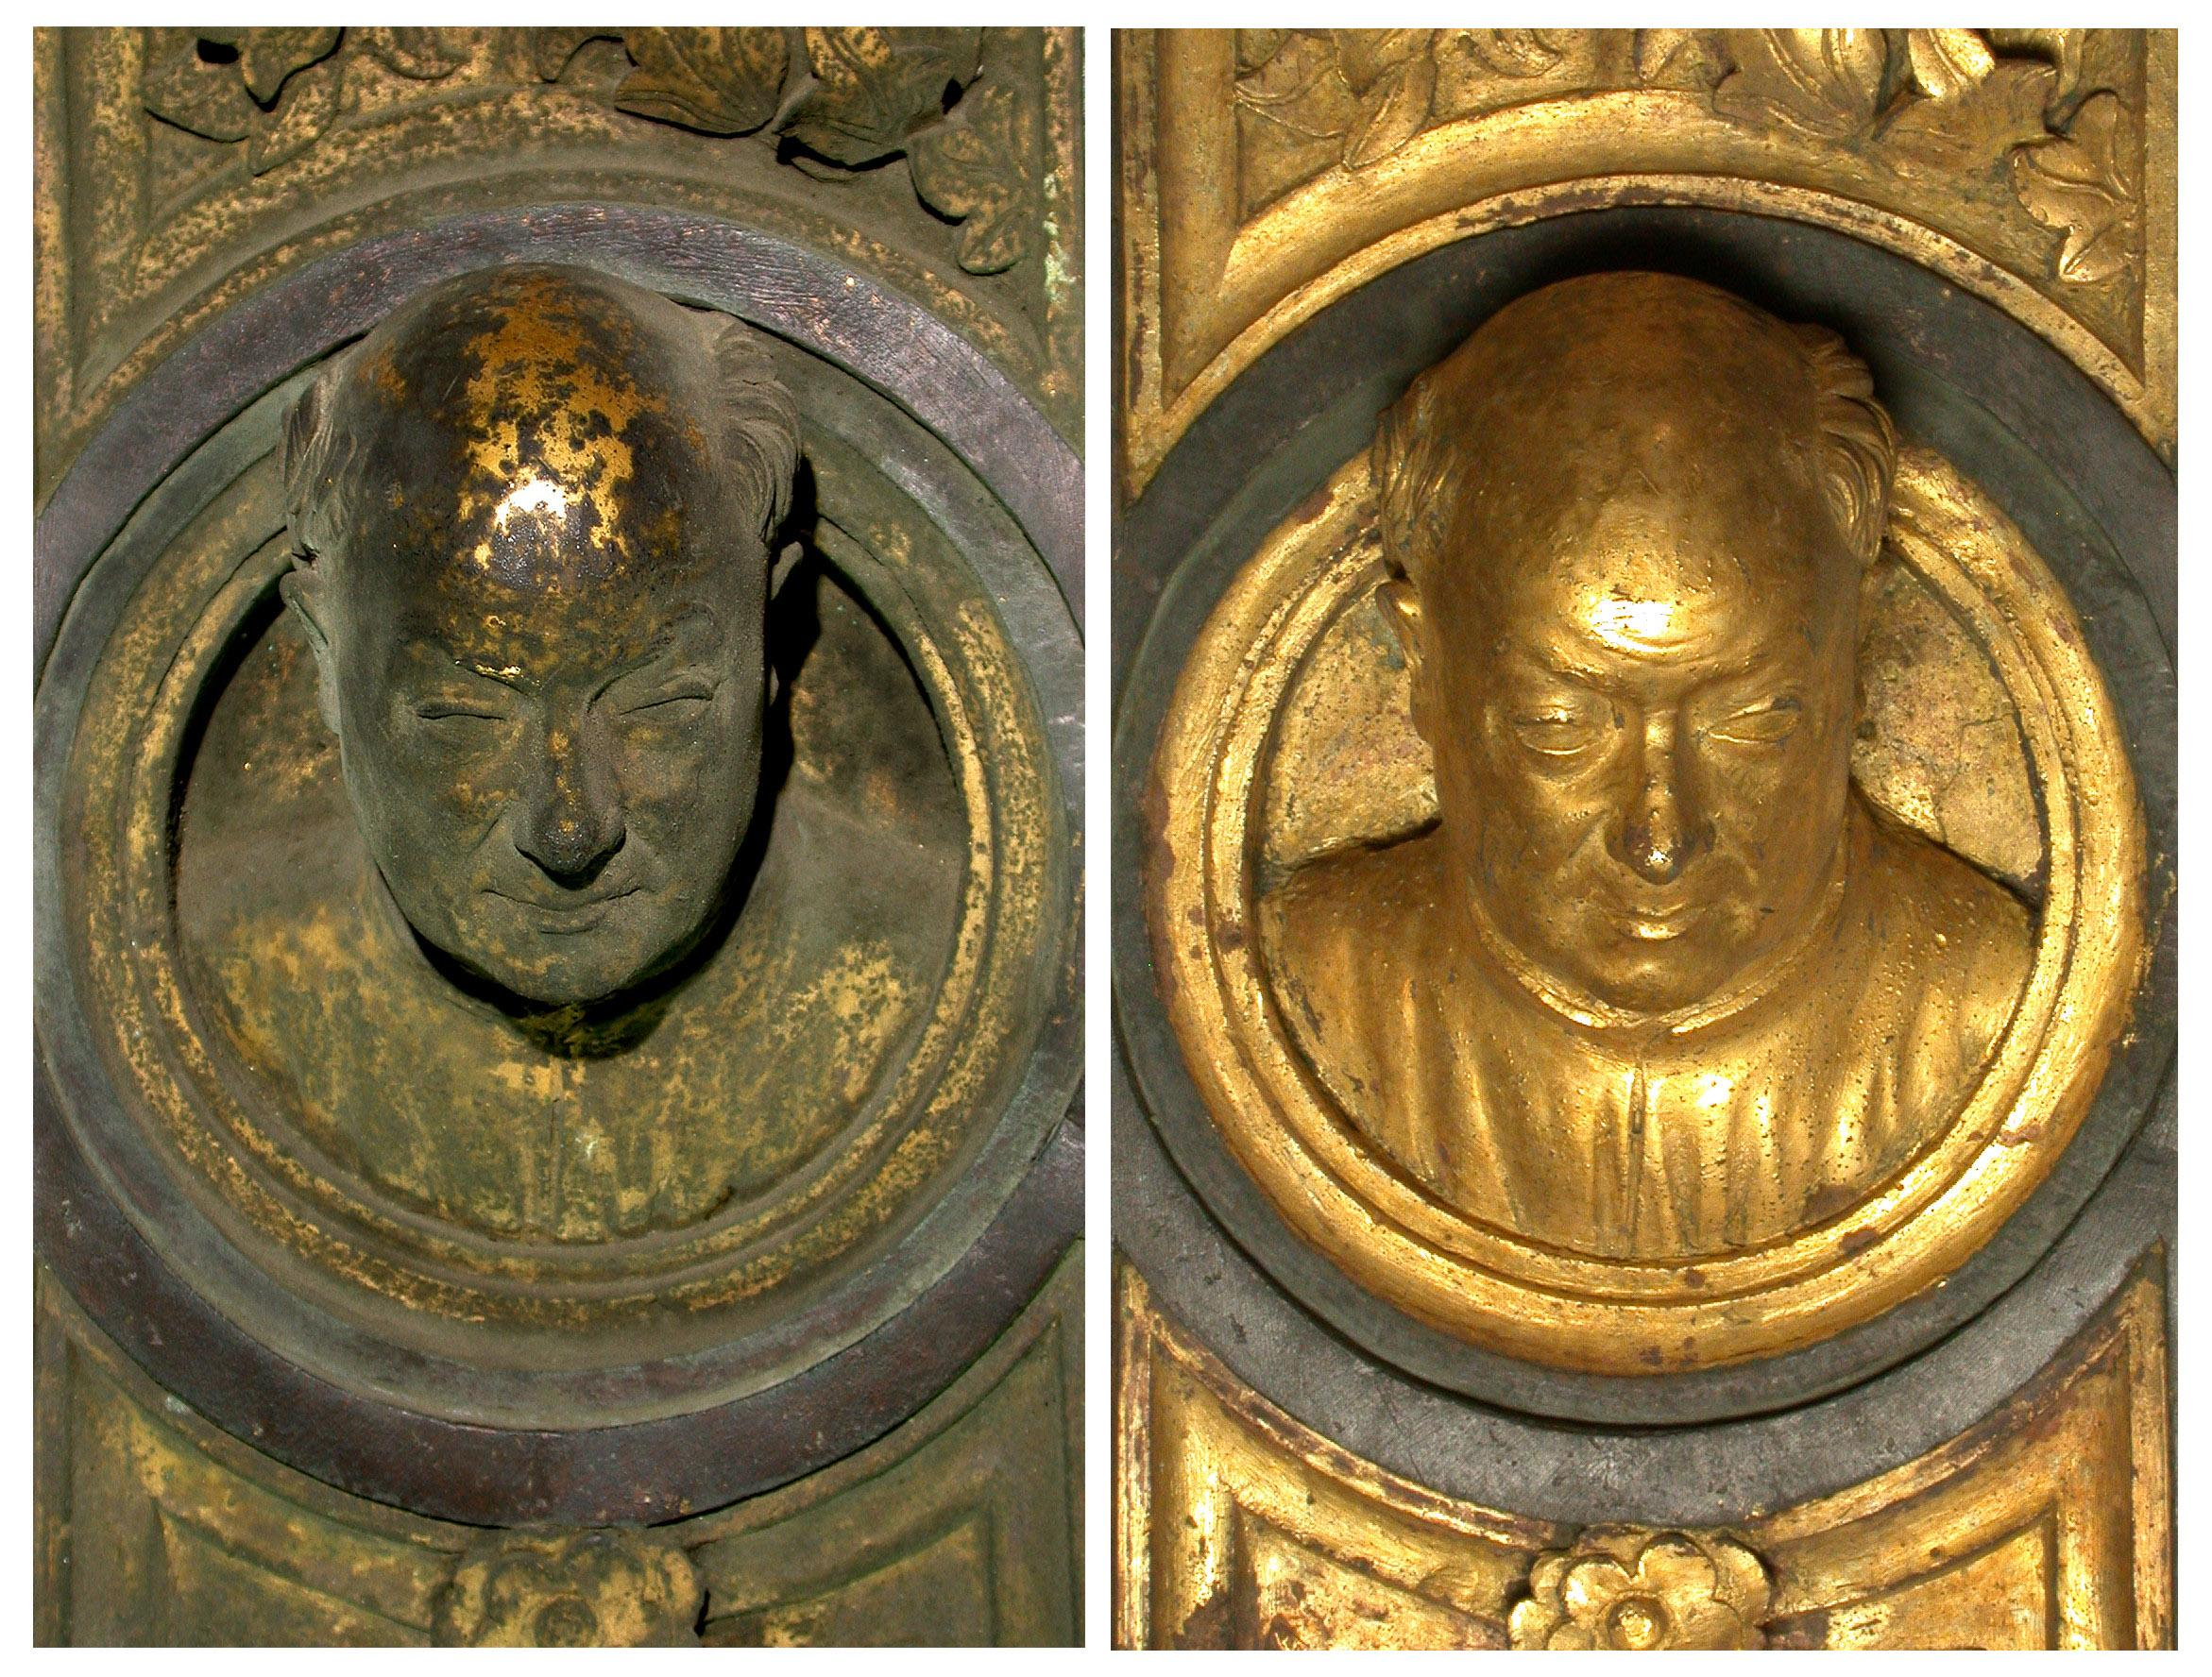 """In this undated photo provided by the Opera di Santa Maria del Fiore, Lorenzo Ghiberti's self portrait is seen on the original panel of the """"Door of Paradise"""" before and after 27 years of restoration in Florence, Italy. The original gilded bronze door, so splendid it was dubbed the """"Door of Paradise"""" by Michelangelo, will be seen again in Florence after 27 years of restoration to remove damage by pollution, vandalism and the wear and tear of centuries. But Lorenzo Ghiberti's 15th-century door won't be going back in its place on the baptistry of Florence's duomo, or cathedral. Starting in September, it will go on display in a Florence museum, Museo dell'Opera di Santa Maria del Fiore, to preserve it from renewed damage. (AP Photo/OPD Salvio, Opera di Santa Maria del Fiore)"""